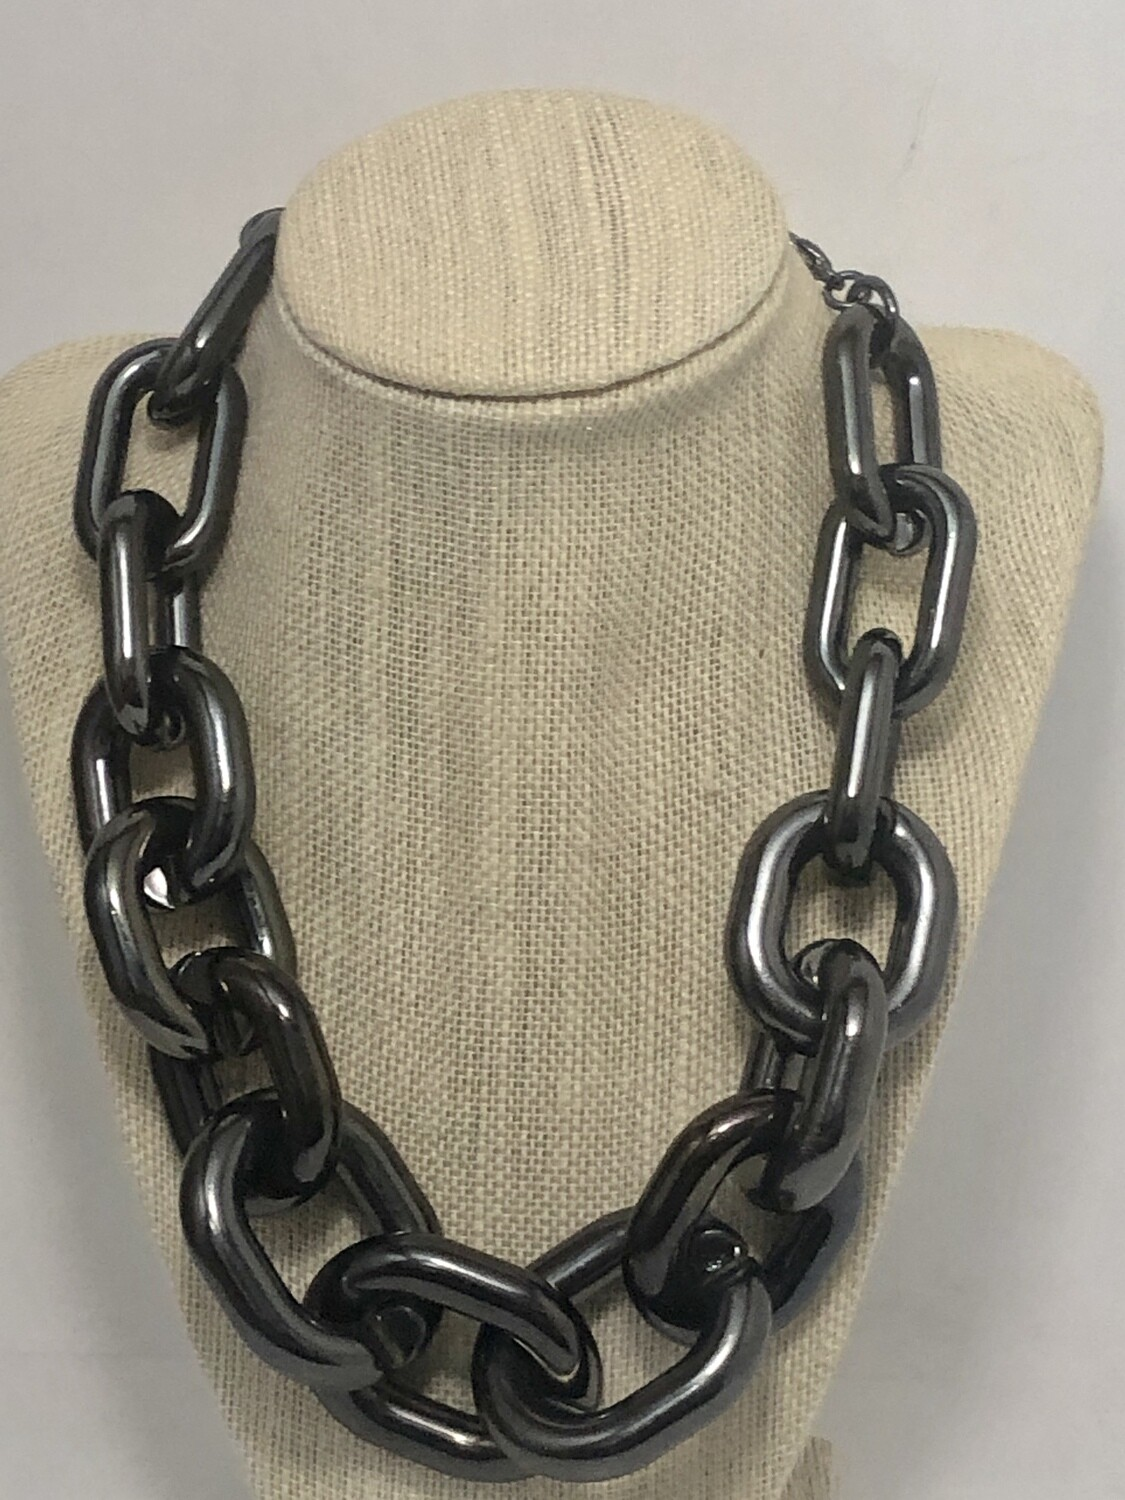 VCLM Smoke Silver Extreme Chain Link Necklace